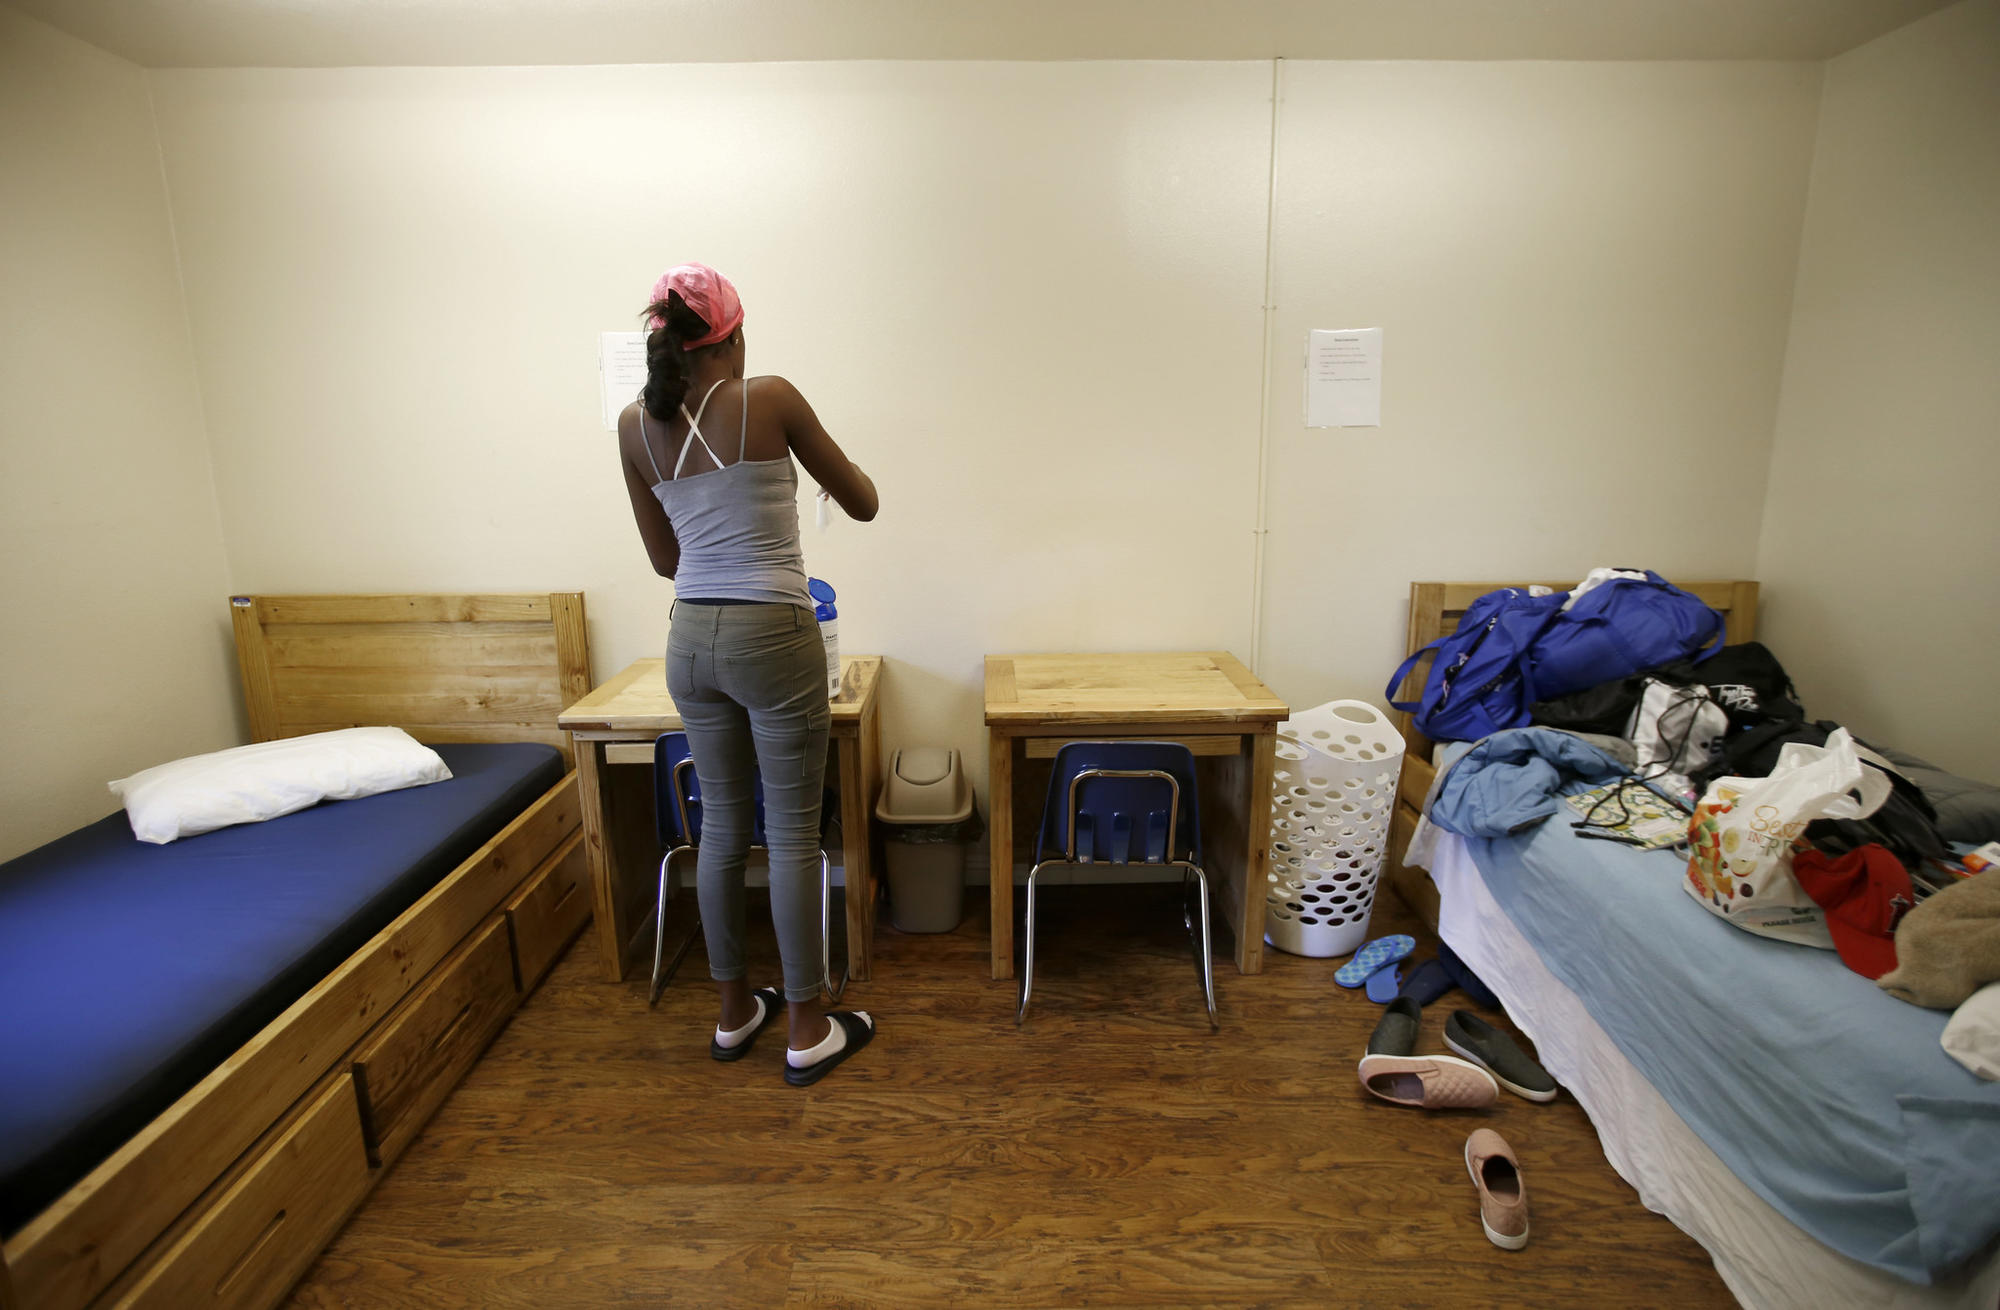 3016895_la-me-ln-temporary-shelter-foster-youth_13.FO.jpg